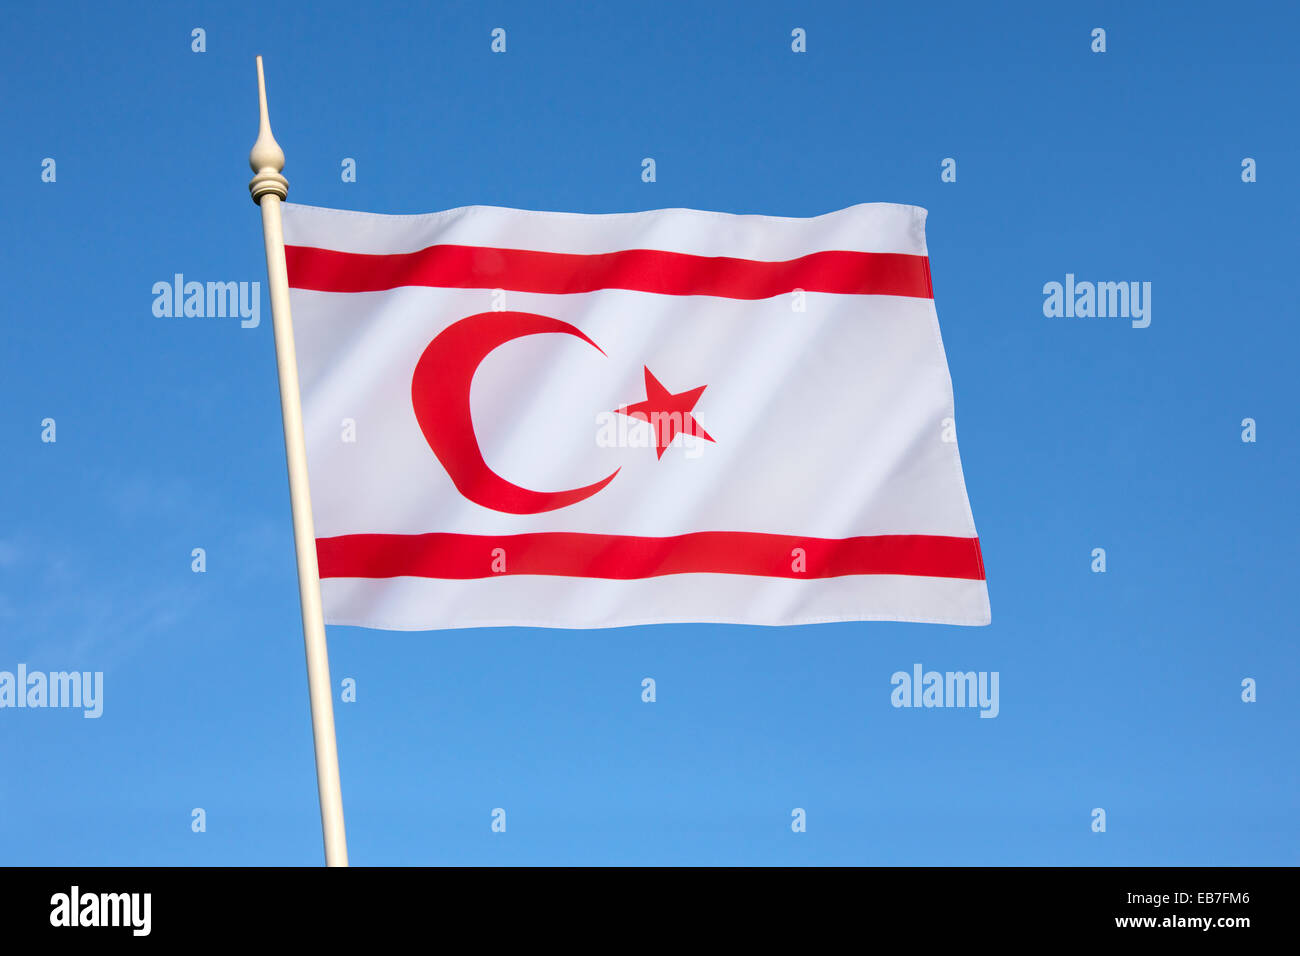 Flag of the Turkish Republic of Northern Cyprus - Stock Image